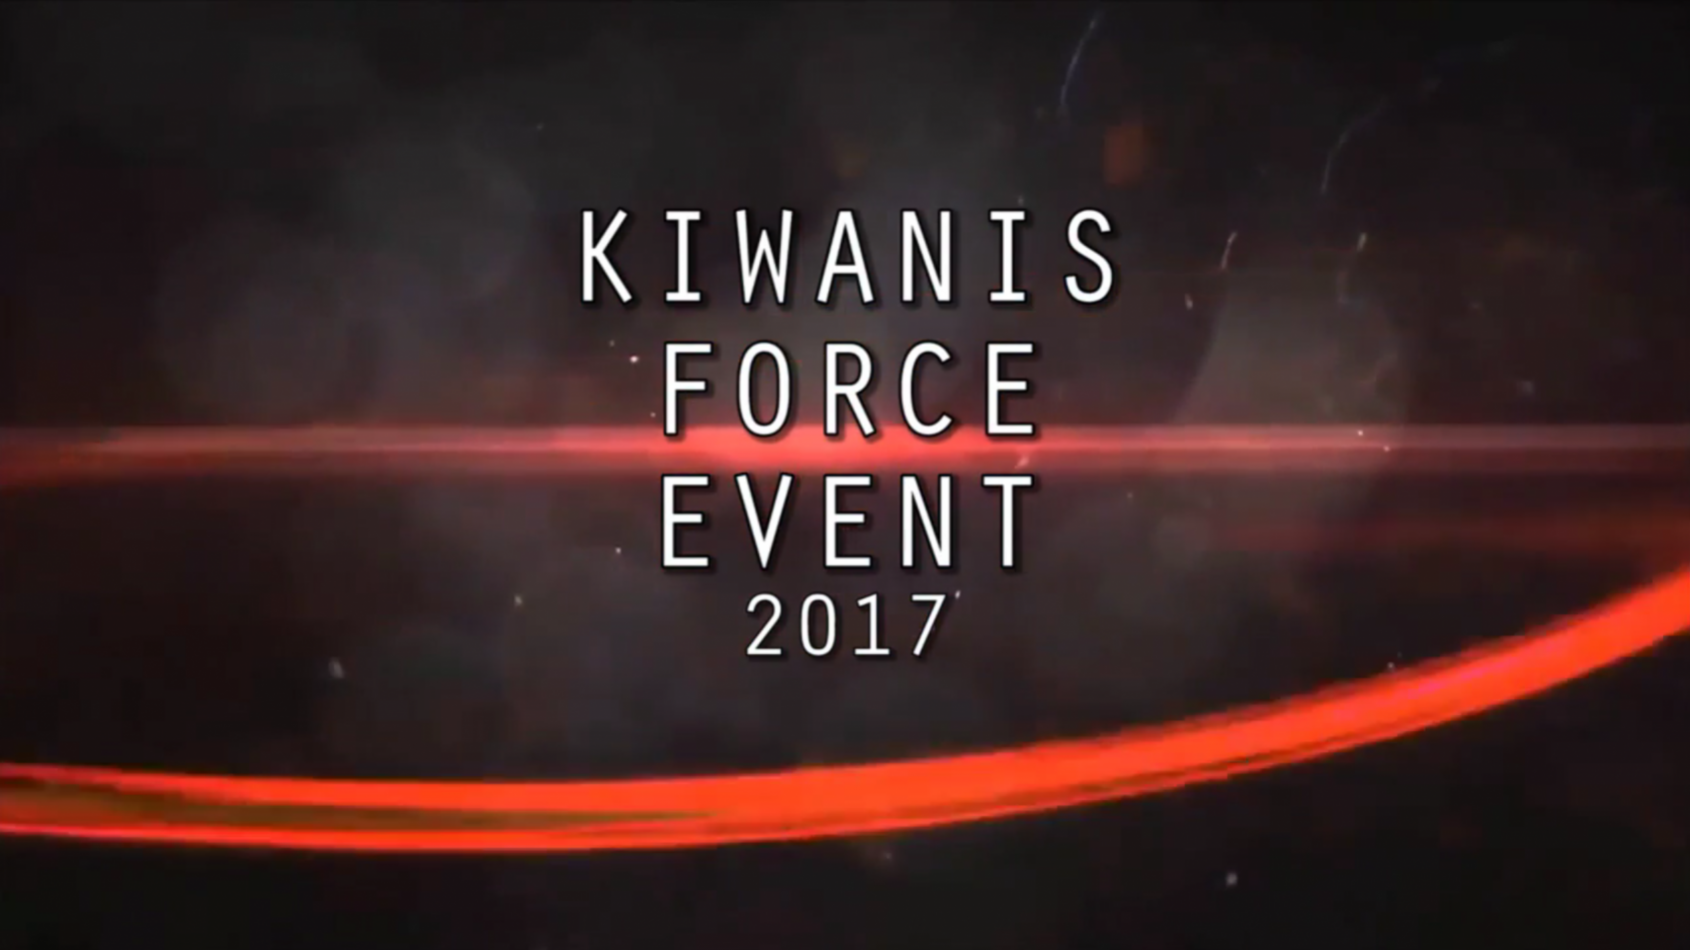 Convention Star Wars: Kiwanis Force Event à Tourcoing Neuville